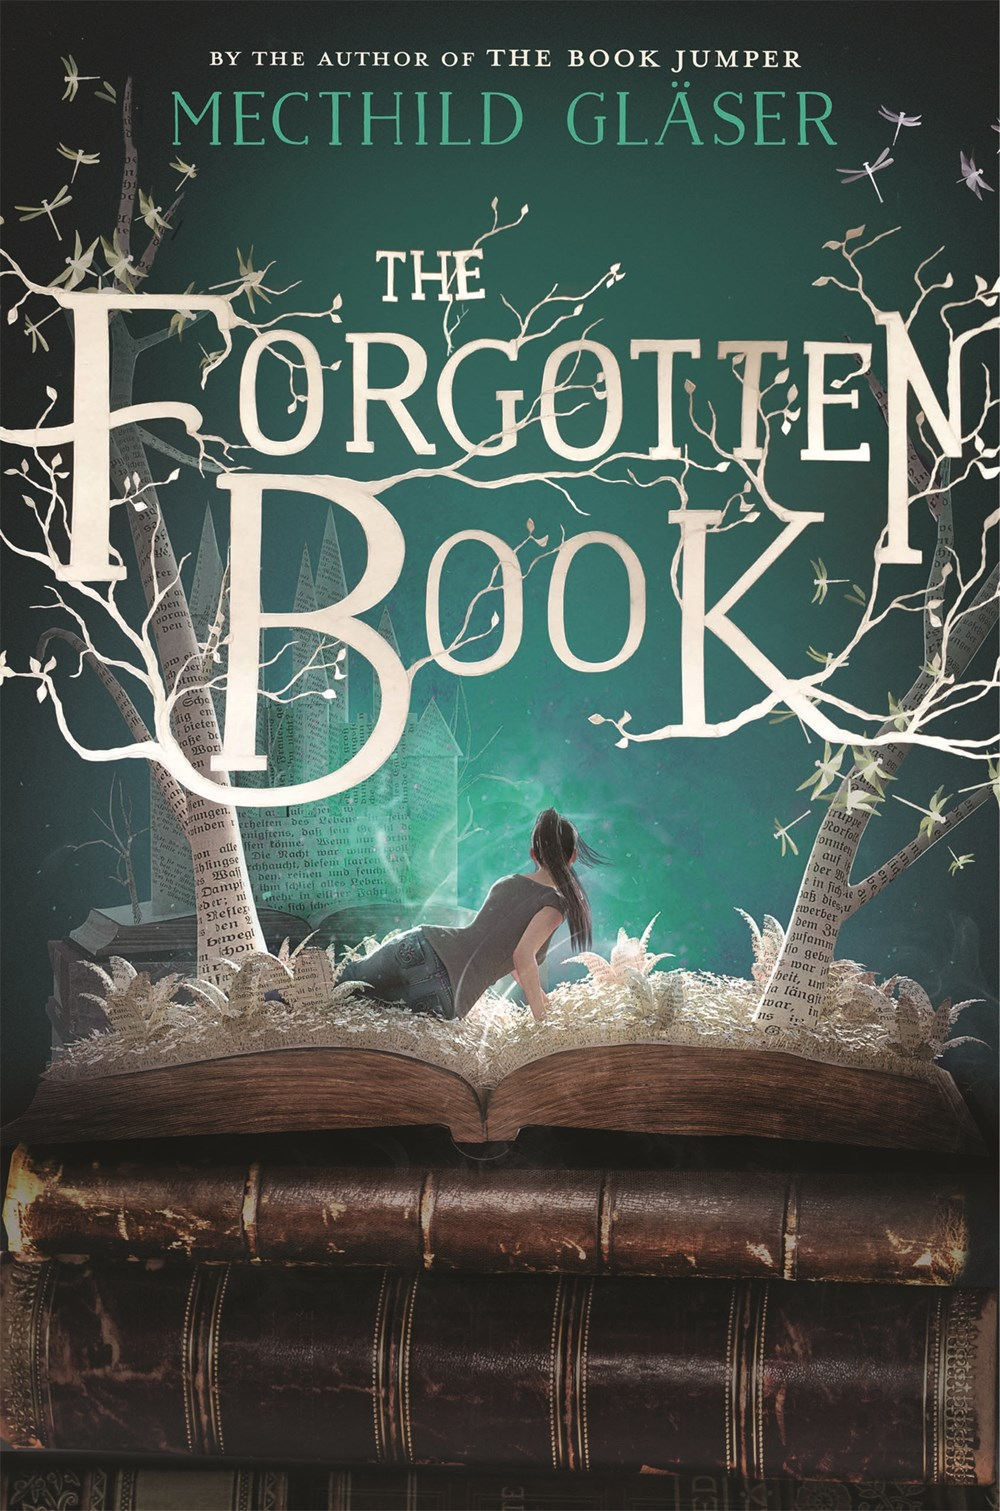 The Forgotten Book , by Mechthild Gläser